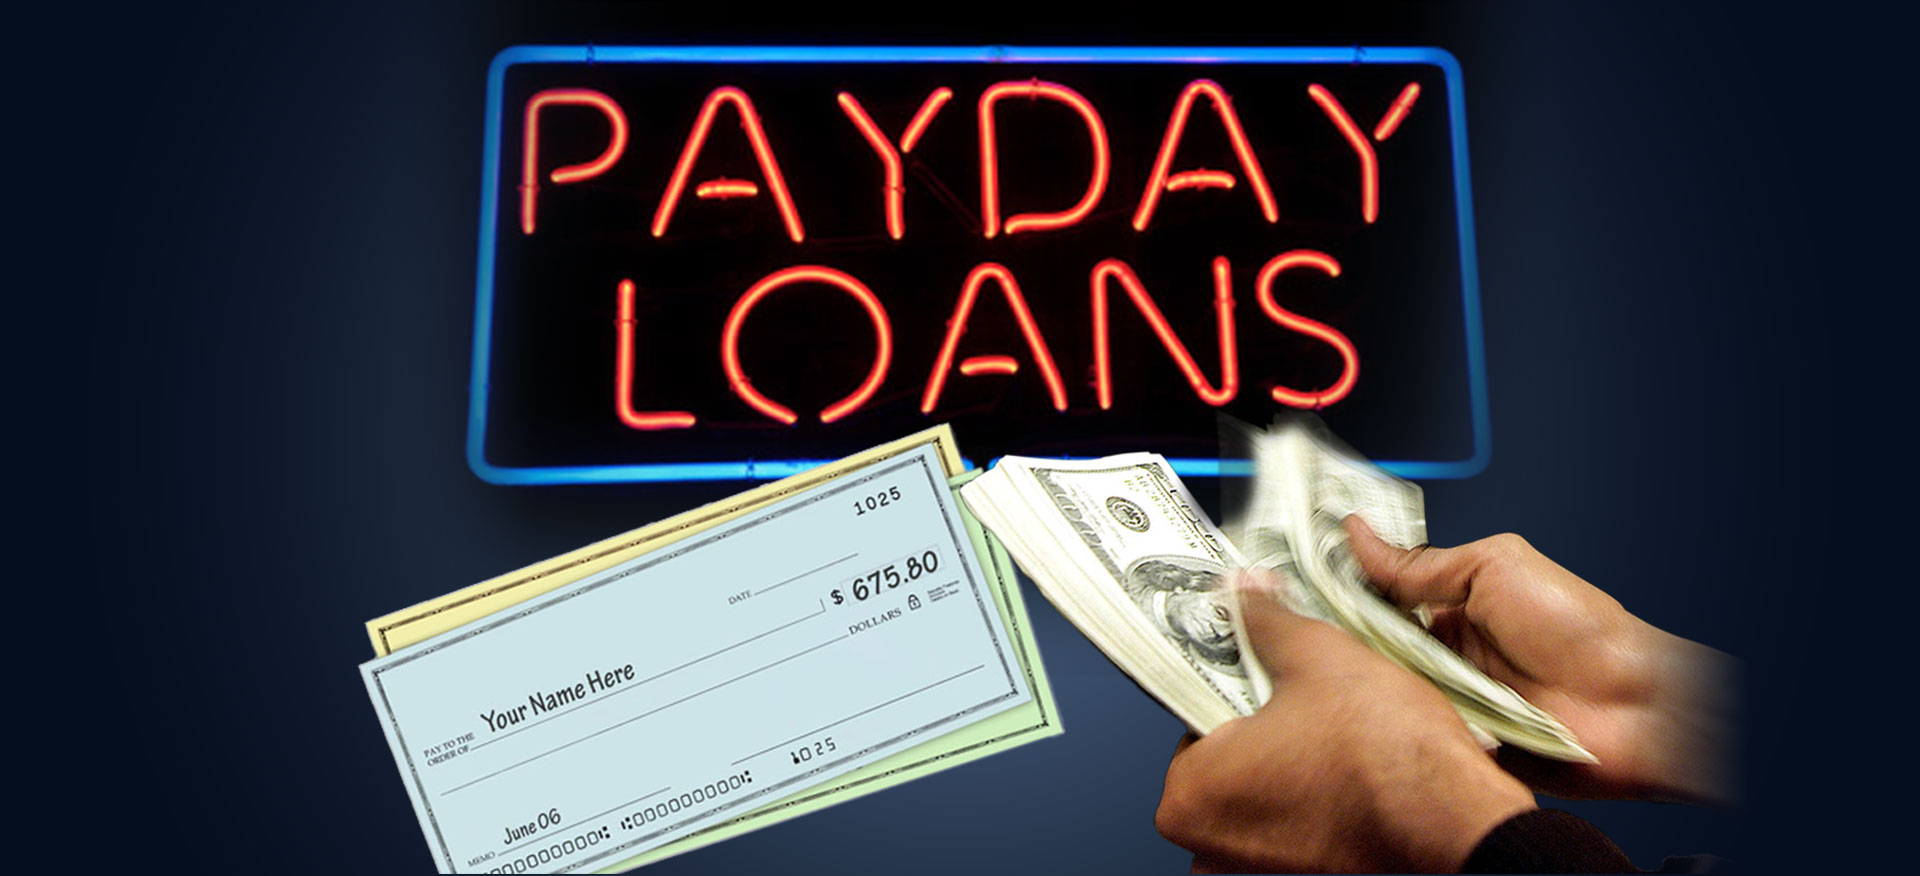 Image Result For Payday Loans In Hour Guaranteed Online No Credit